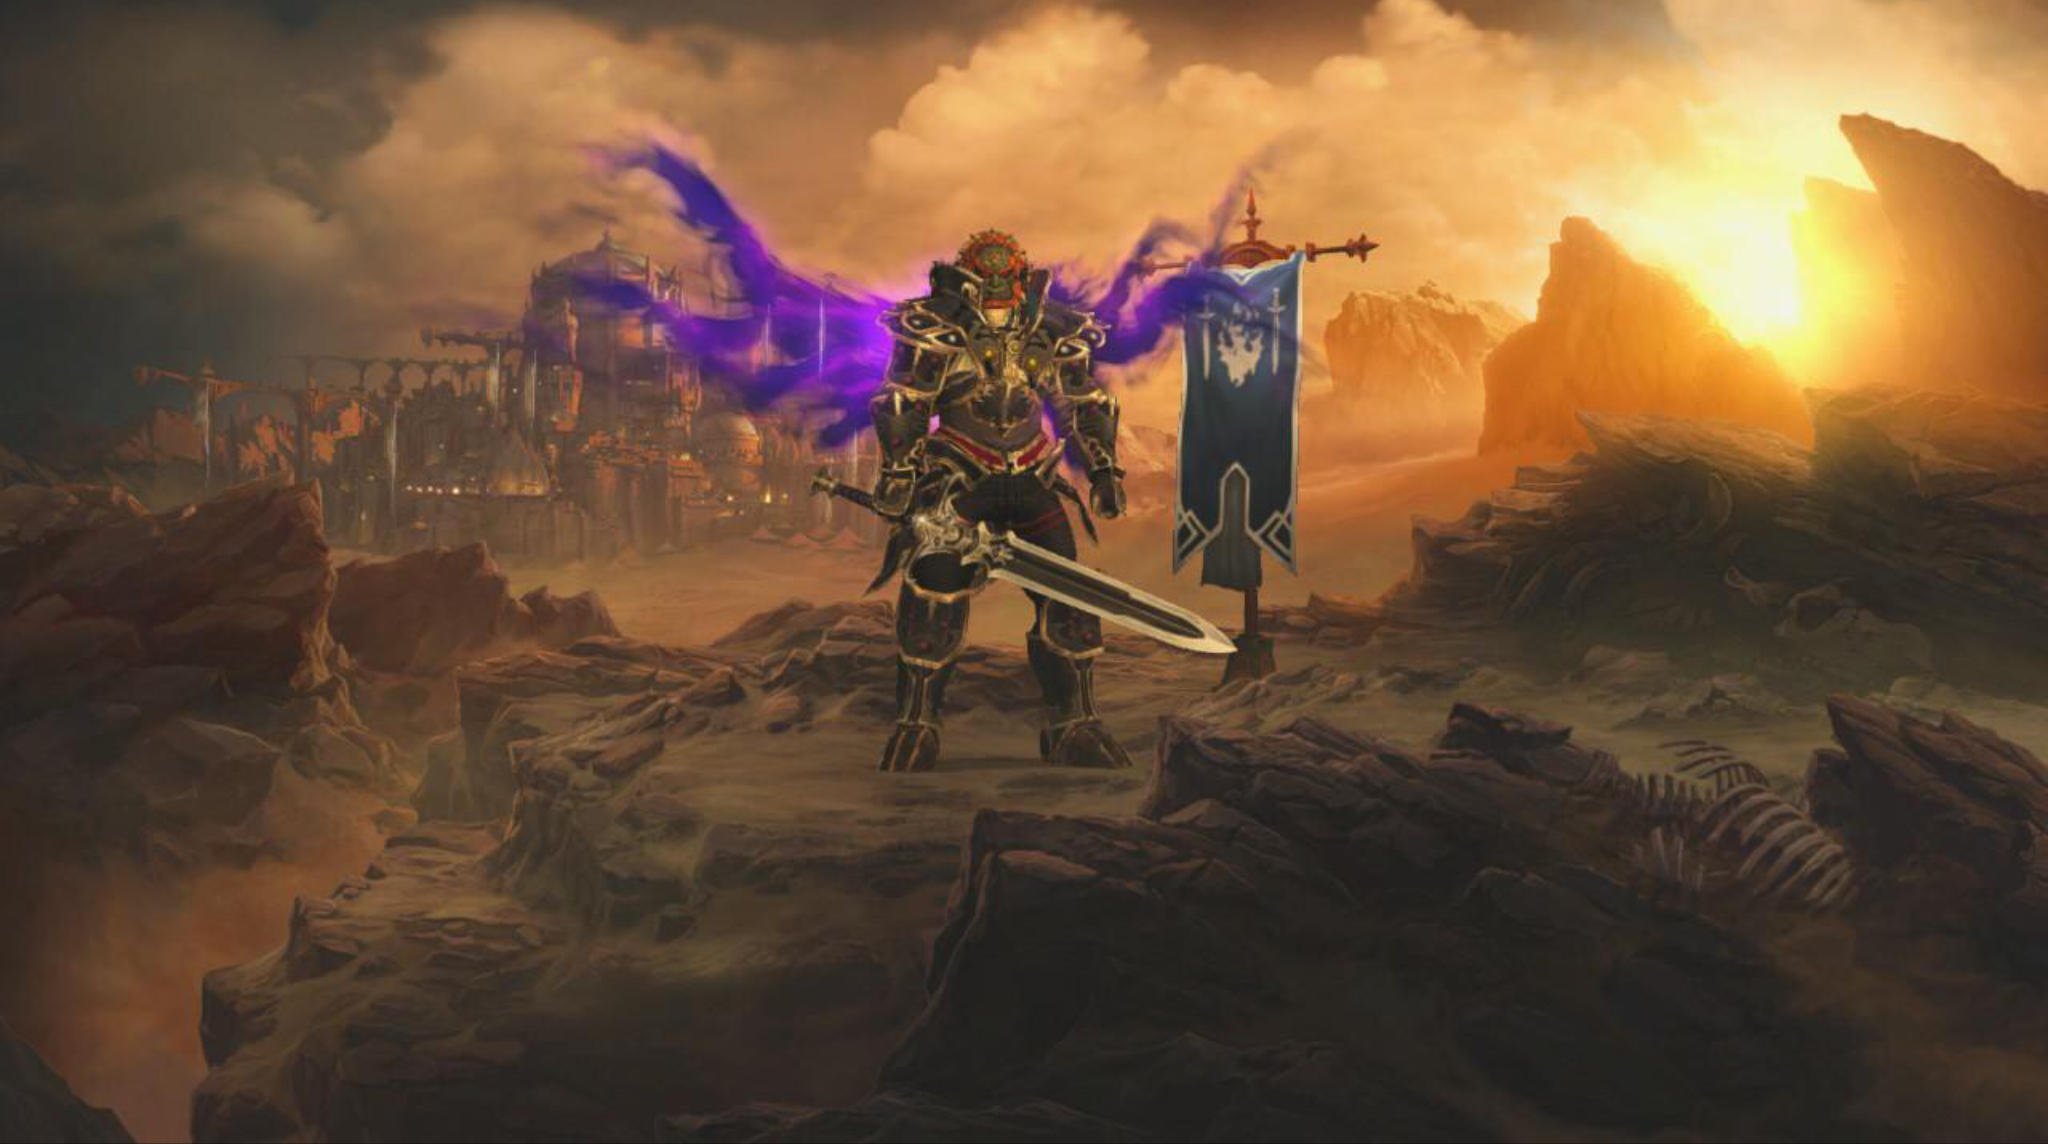 [LEAKED] Diablo 3 Coming to Switch – Exclusive Zelda Content